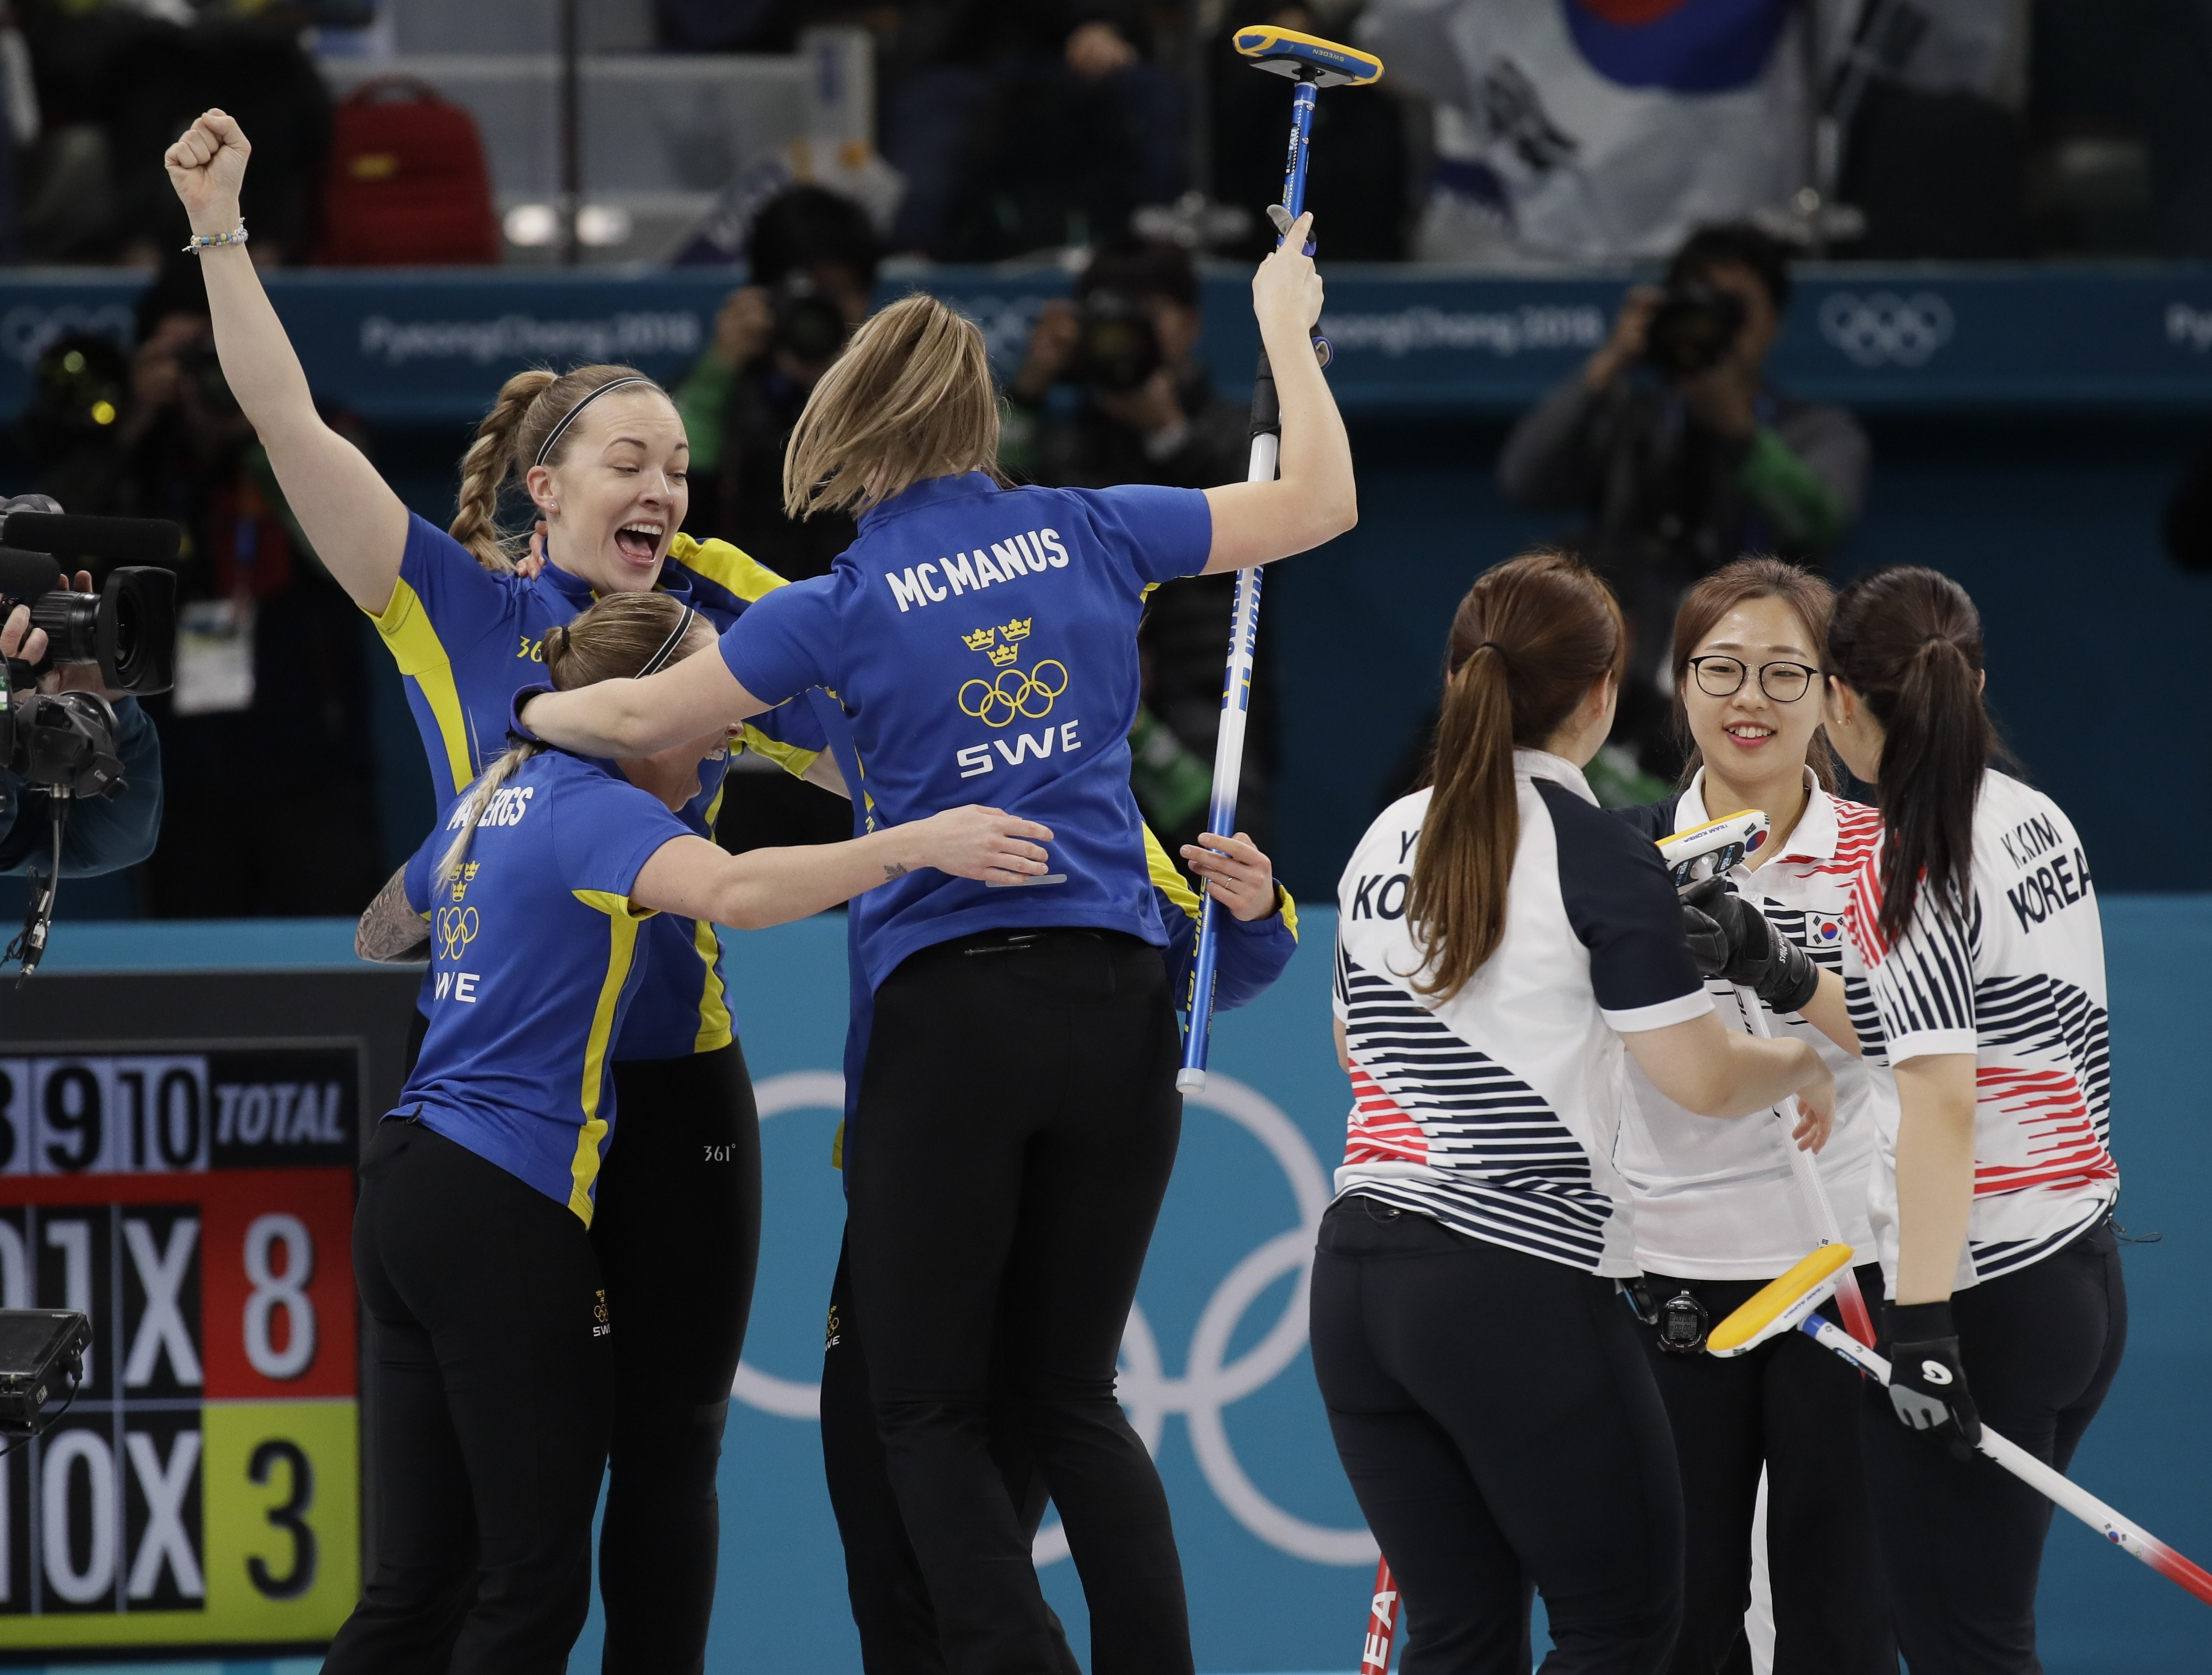 Sweden celebrates after winning the gold medal in their women's curling final in the Gangneung Curling Centre at the 2018 Winter Olympics in Gangneung, South Korea, Sunday, Feb. 25, 2018. (AP Photo/Aaron Favila)